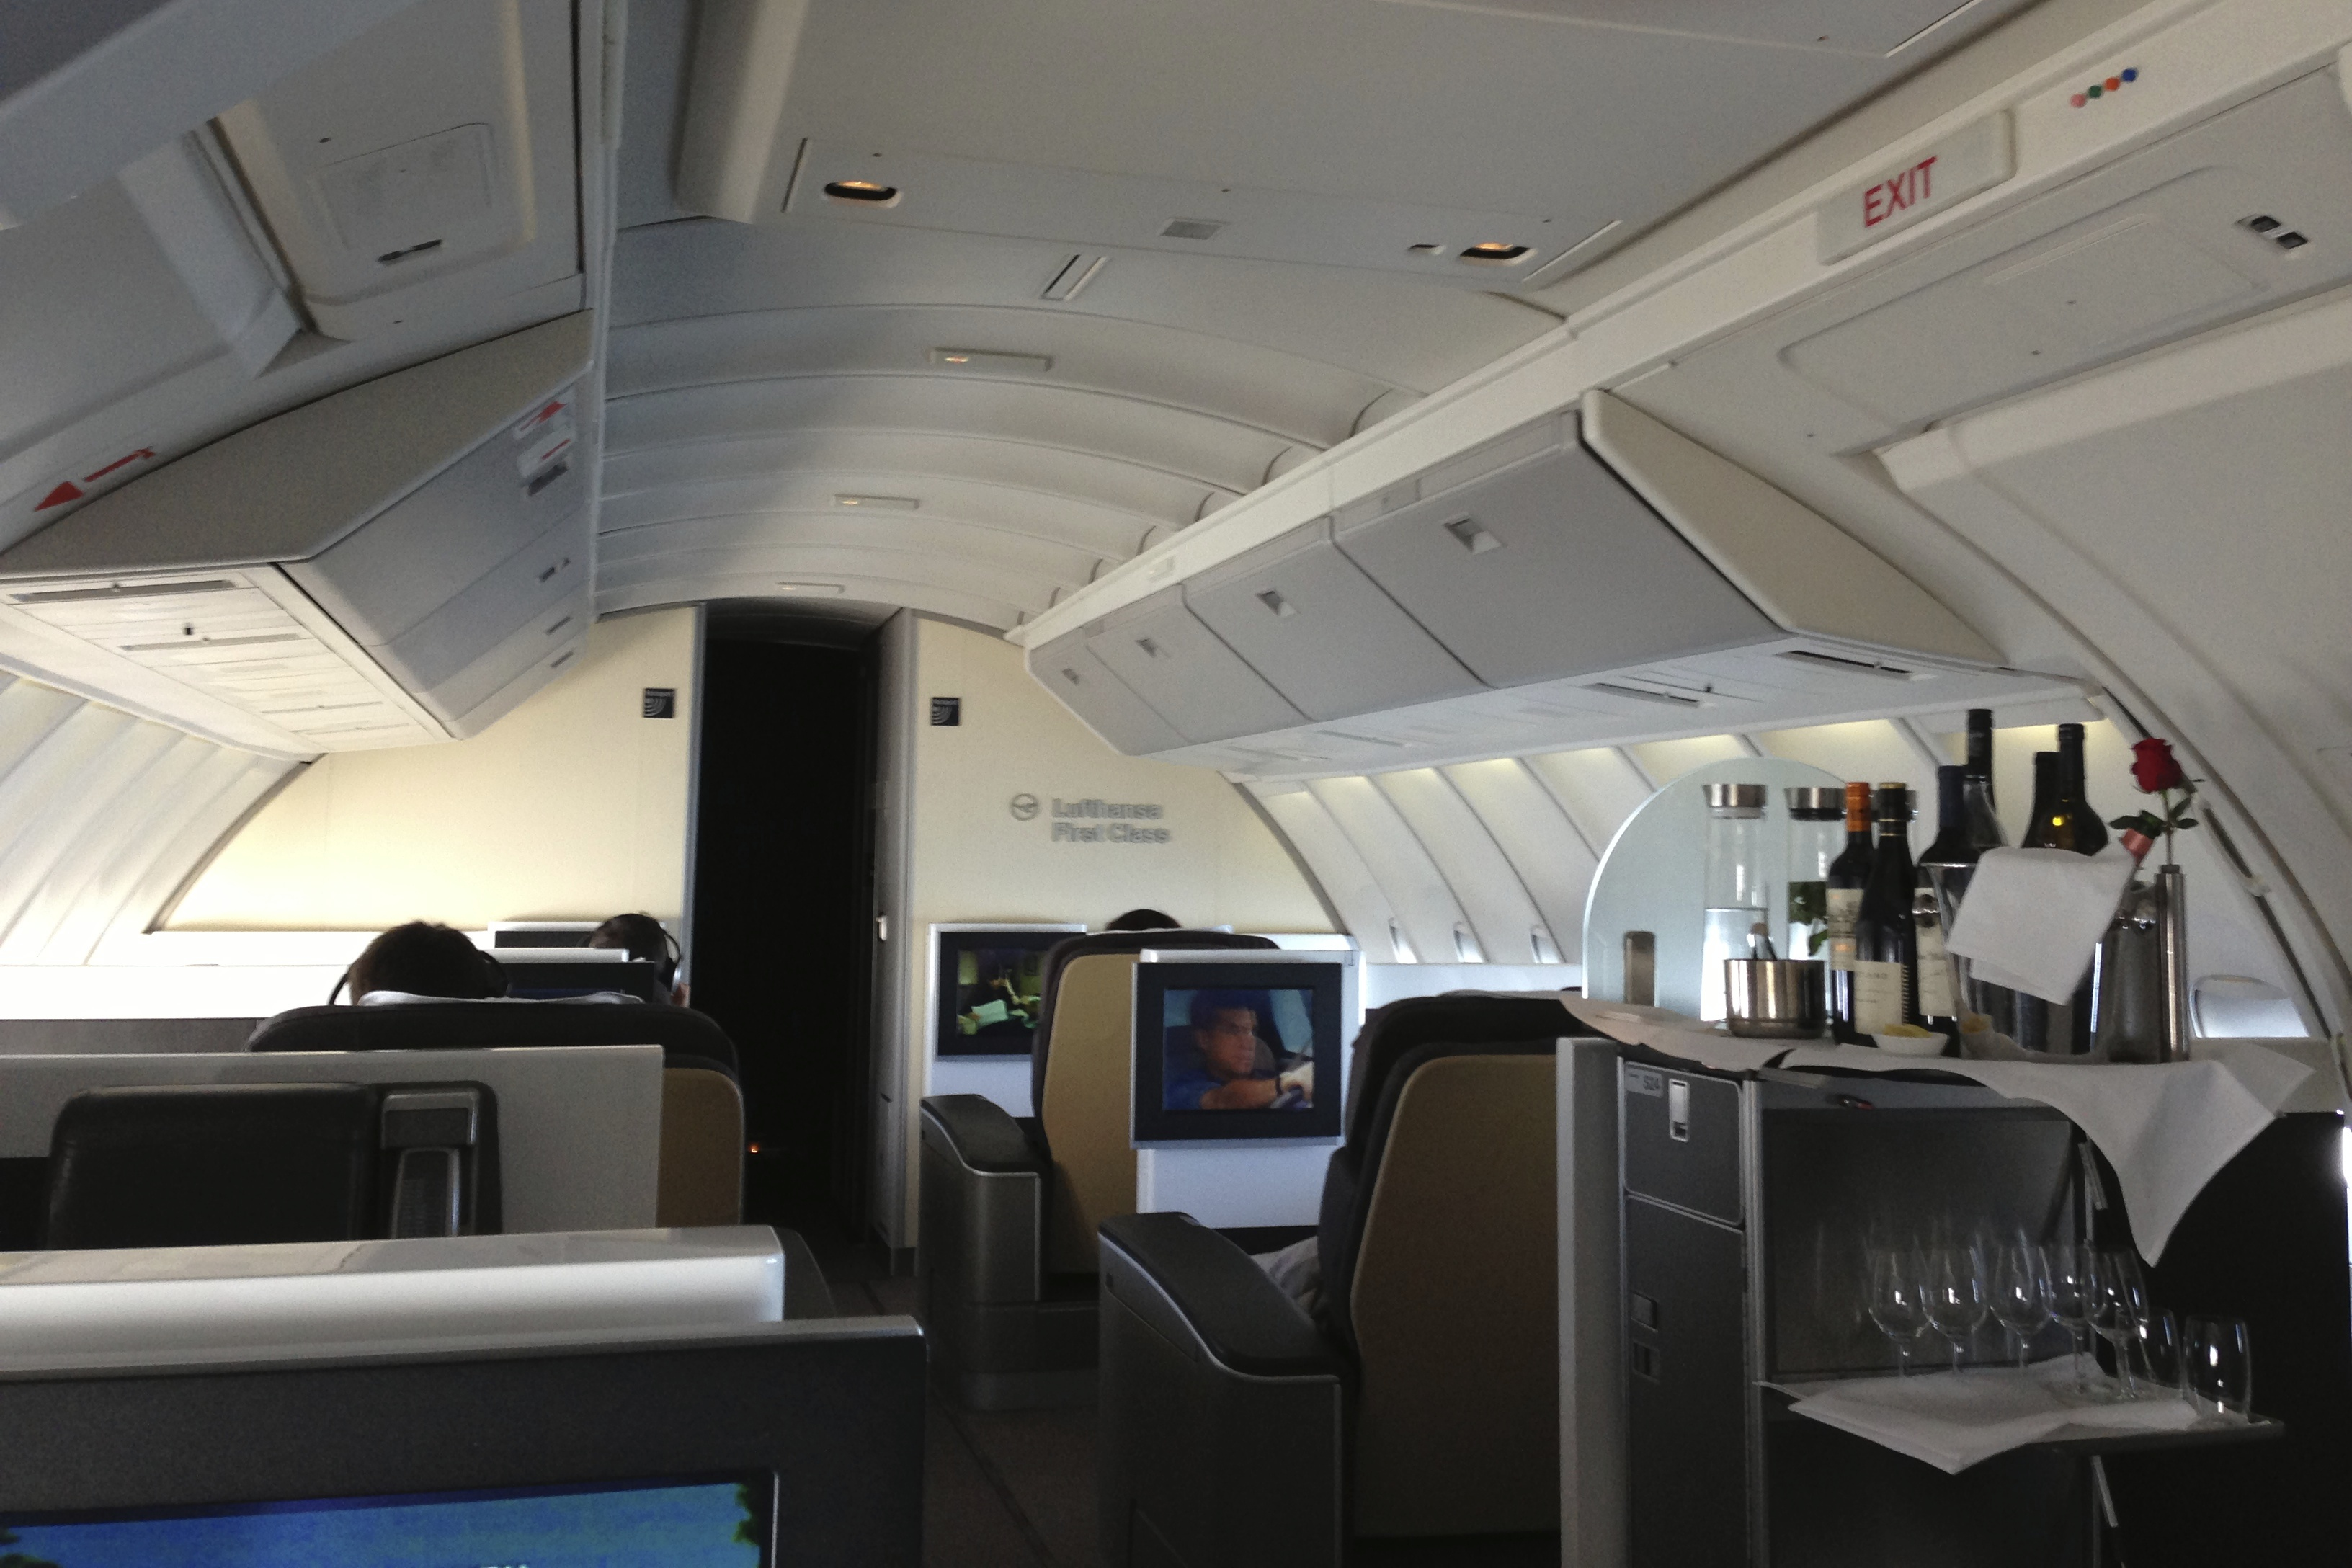 Lufthansa First Class Upper Deck 747-400